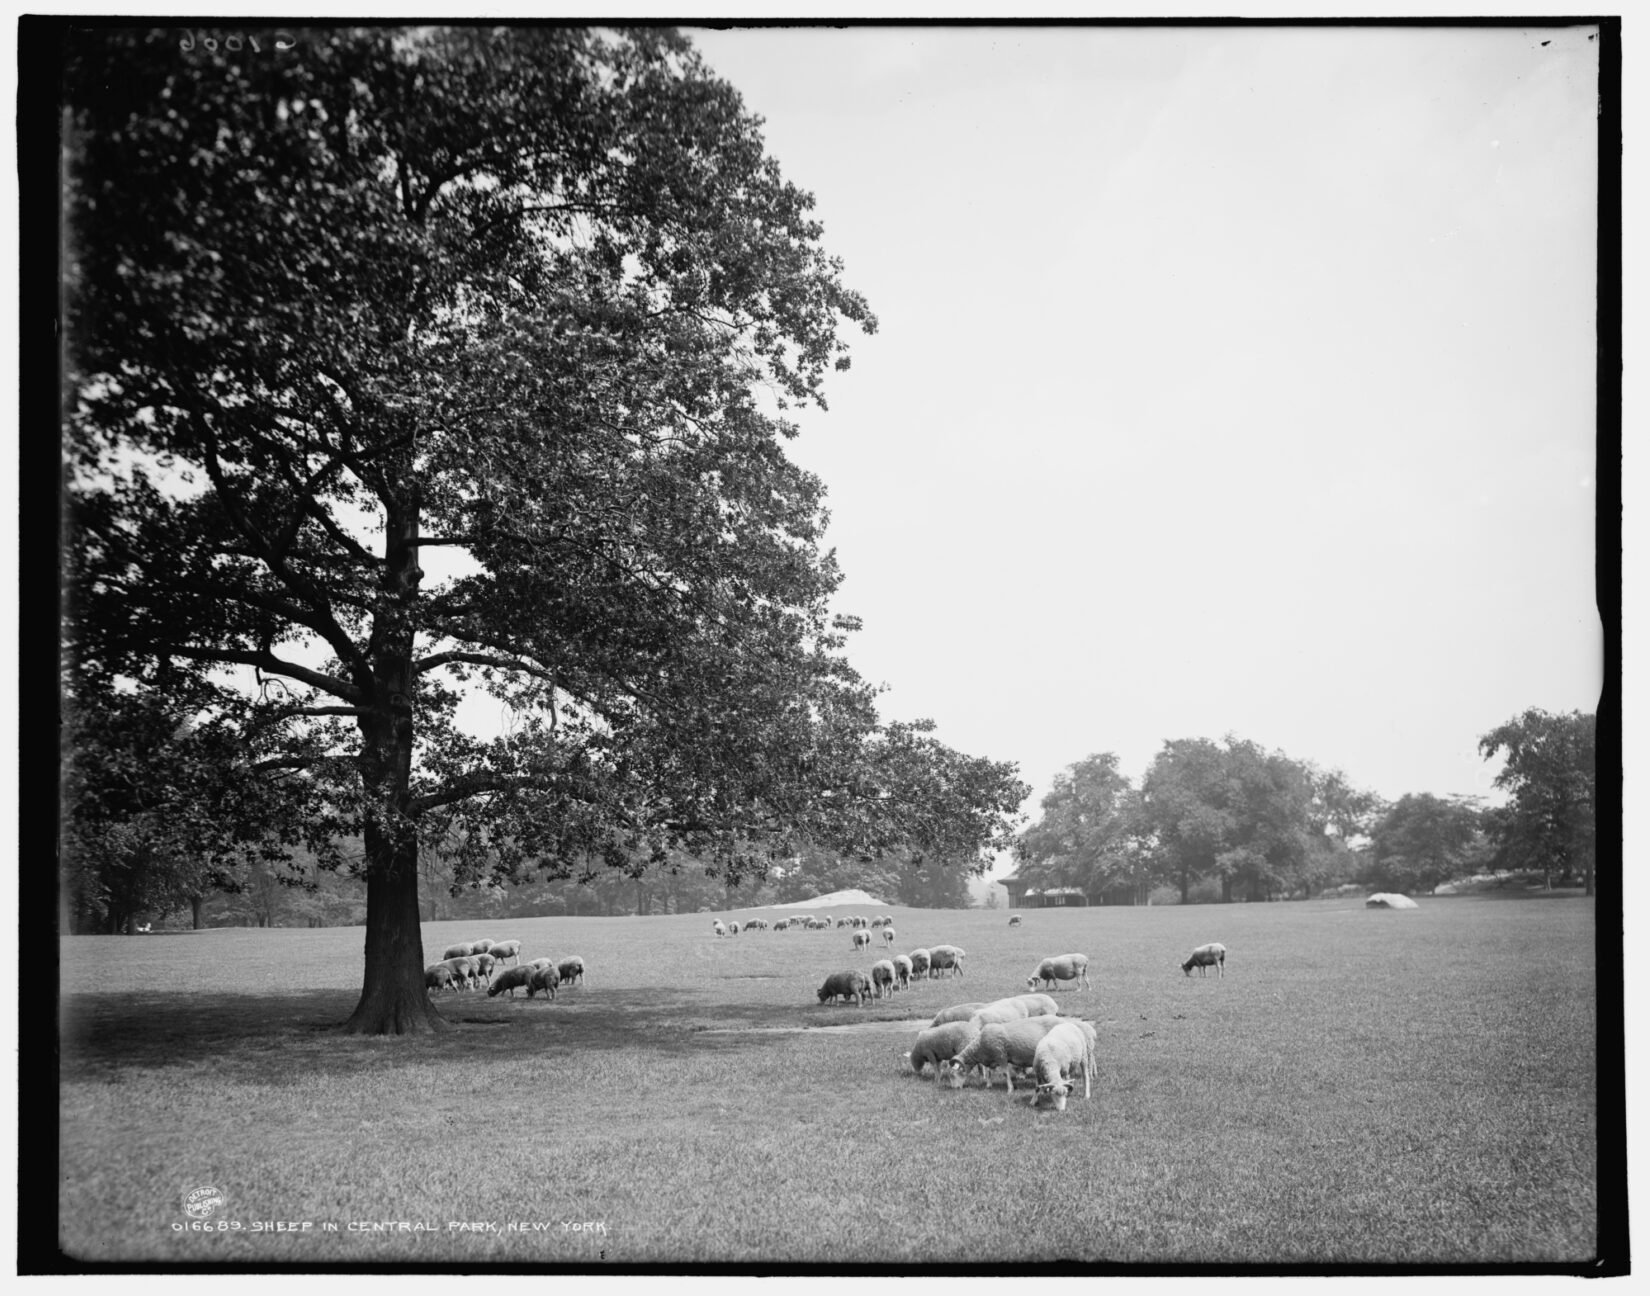 A black-and-white photo showing sheep grazing on the meadow.